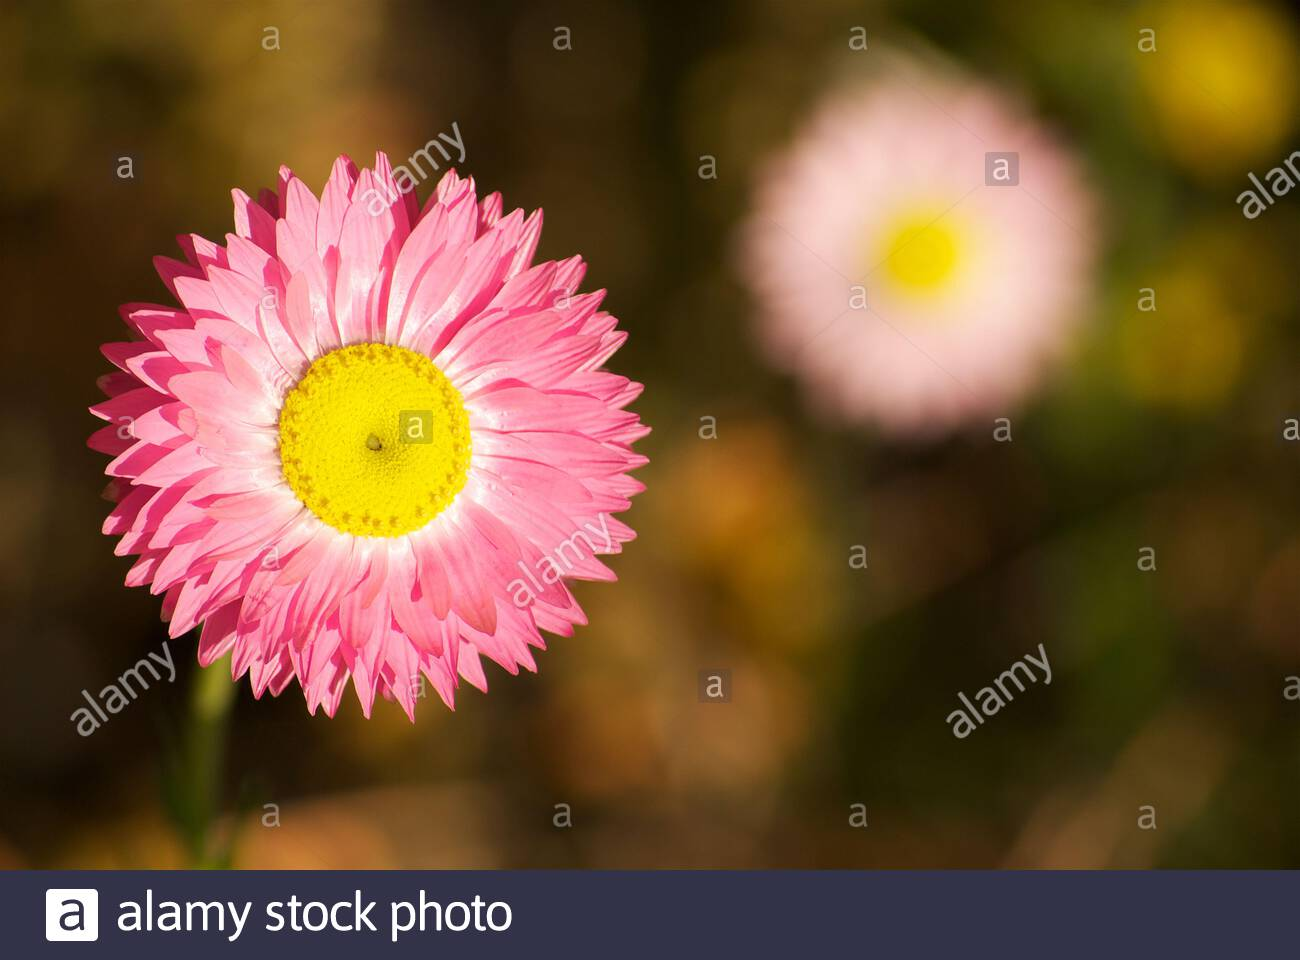 pink-everlasting-rhodanthe-chlorocephala-rosea-a-wildflower-native-to-western-australia-and-south-australia-2E1XJFH.jpg